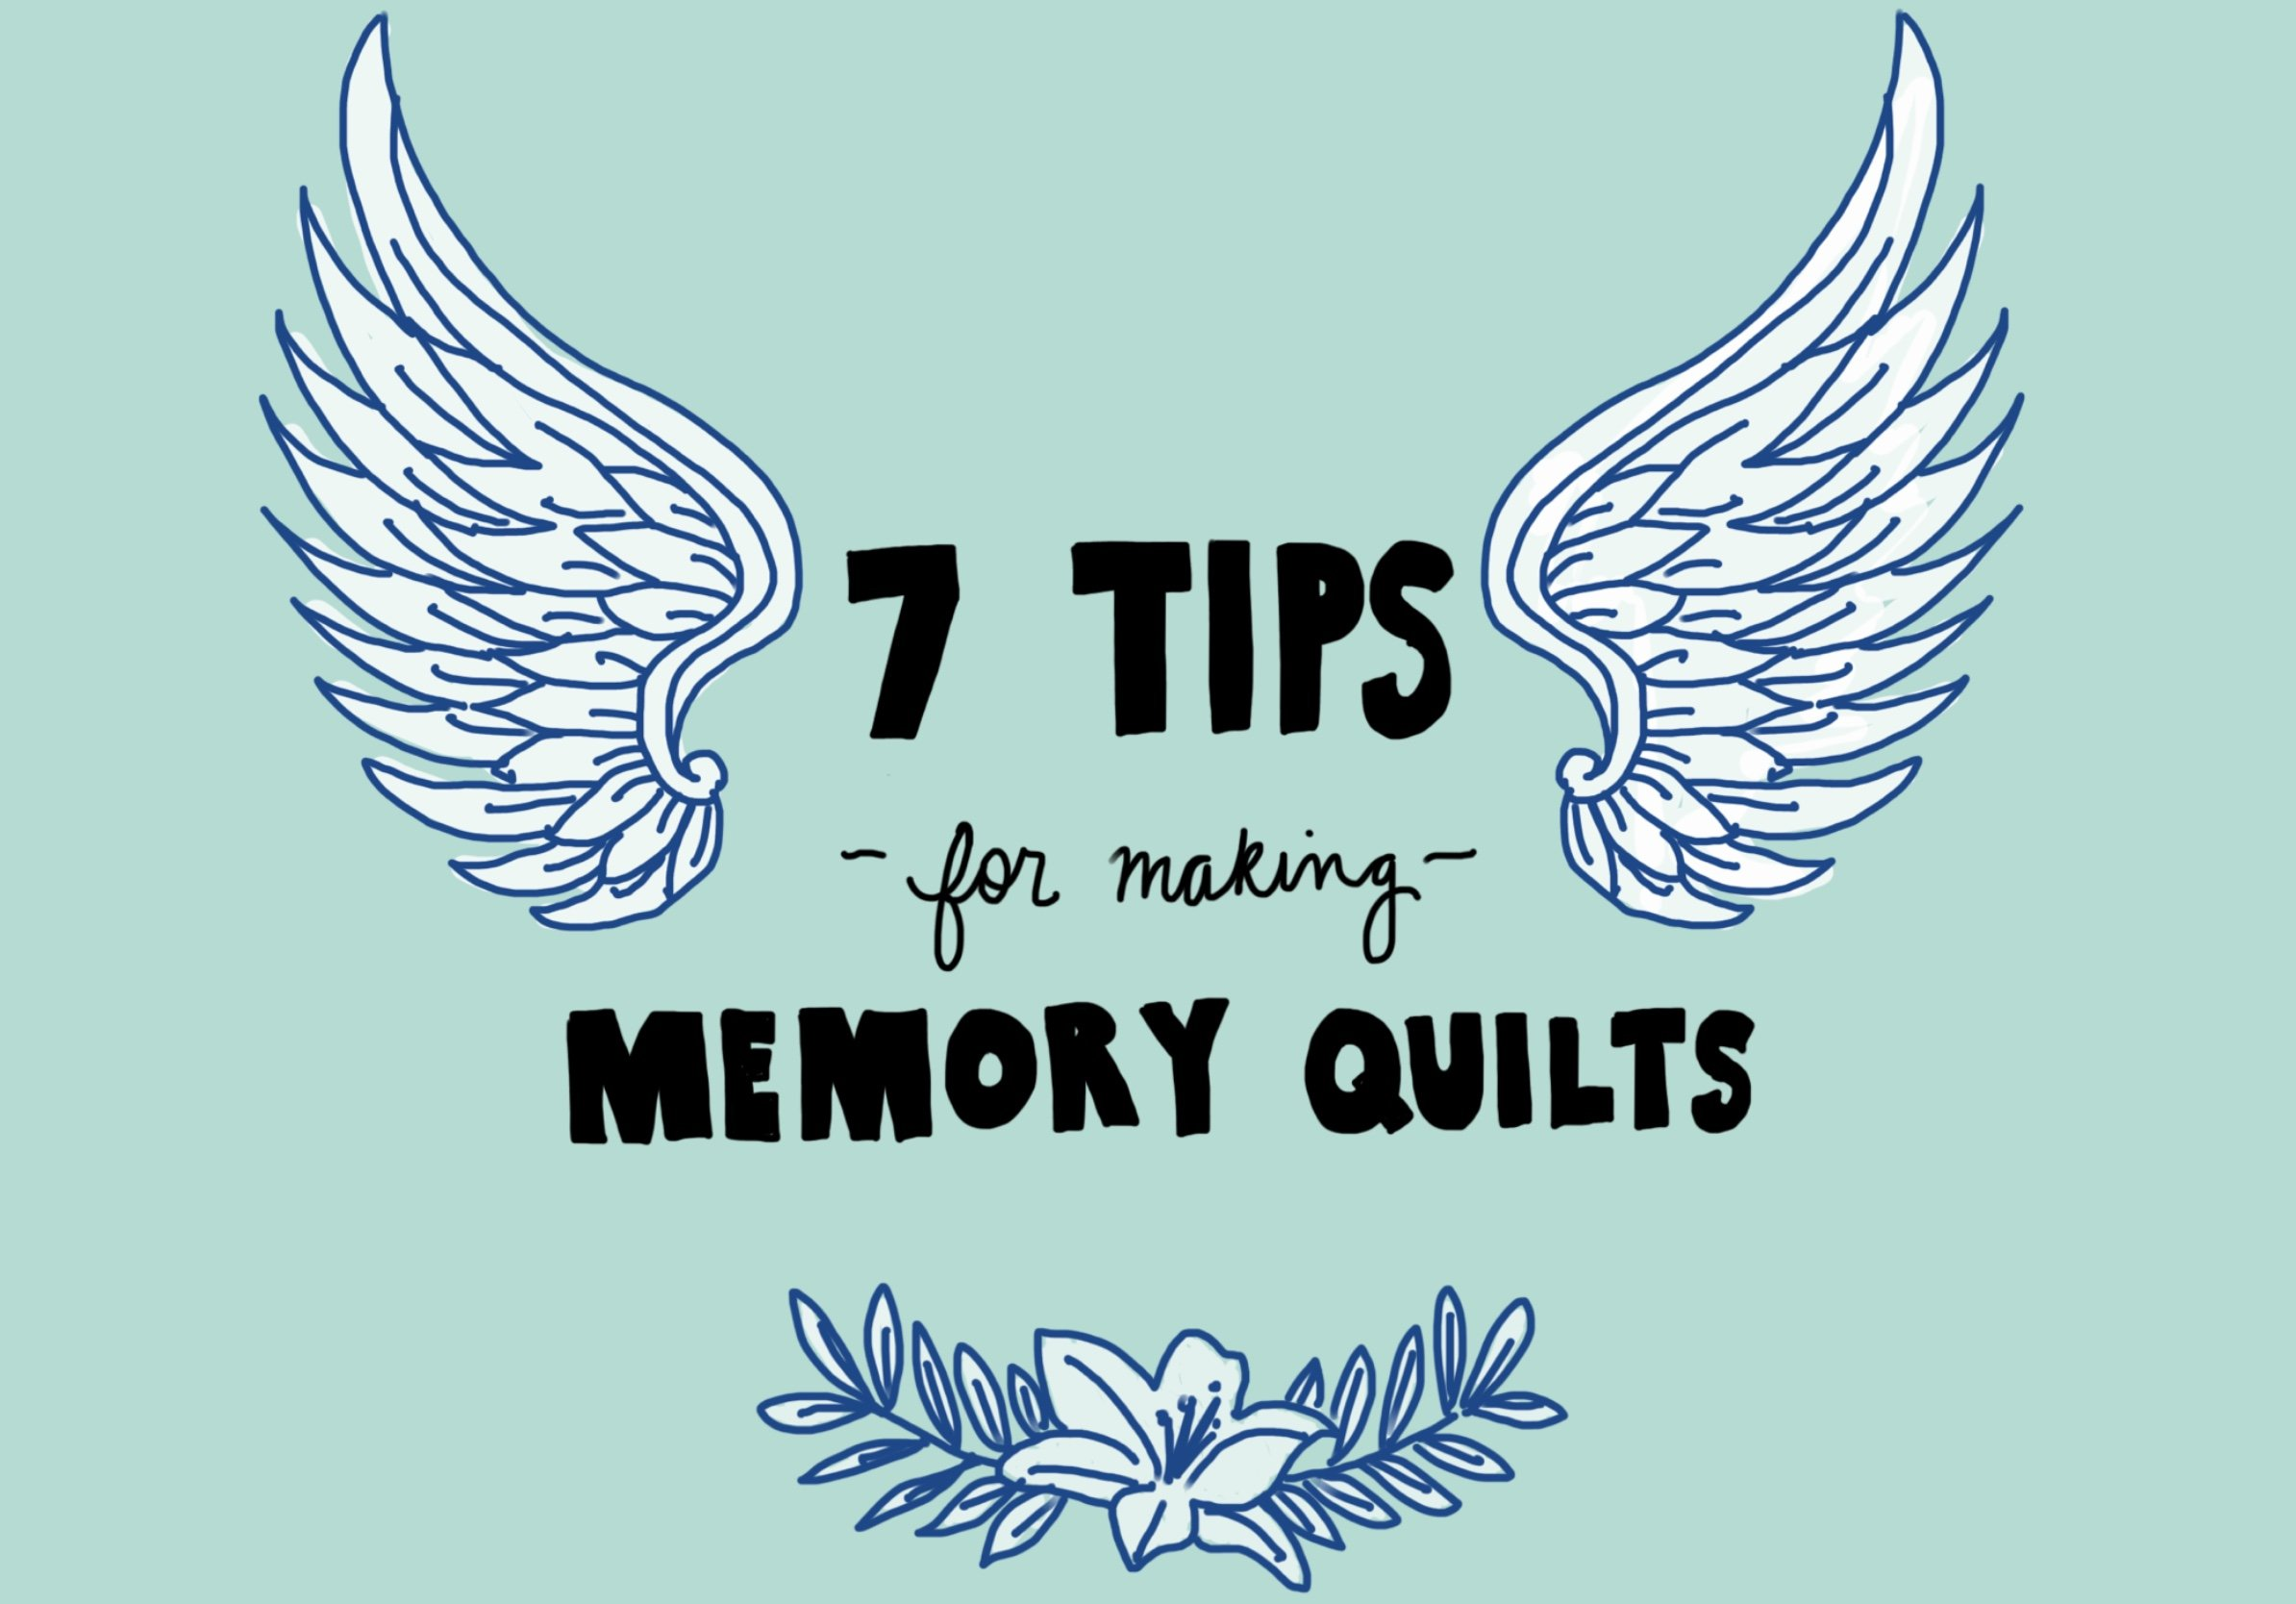 7 Tips for making memory quilts on feelgood fibers with @tree.textiles